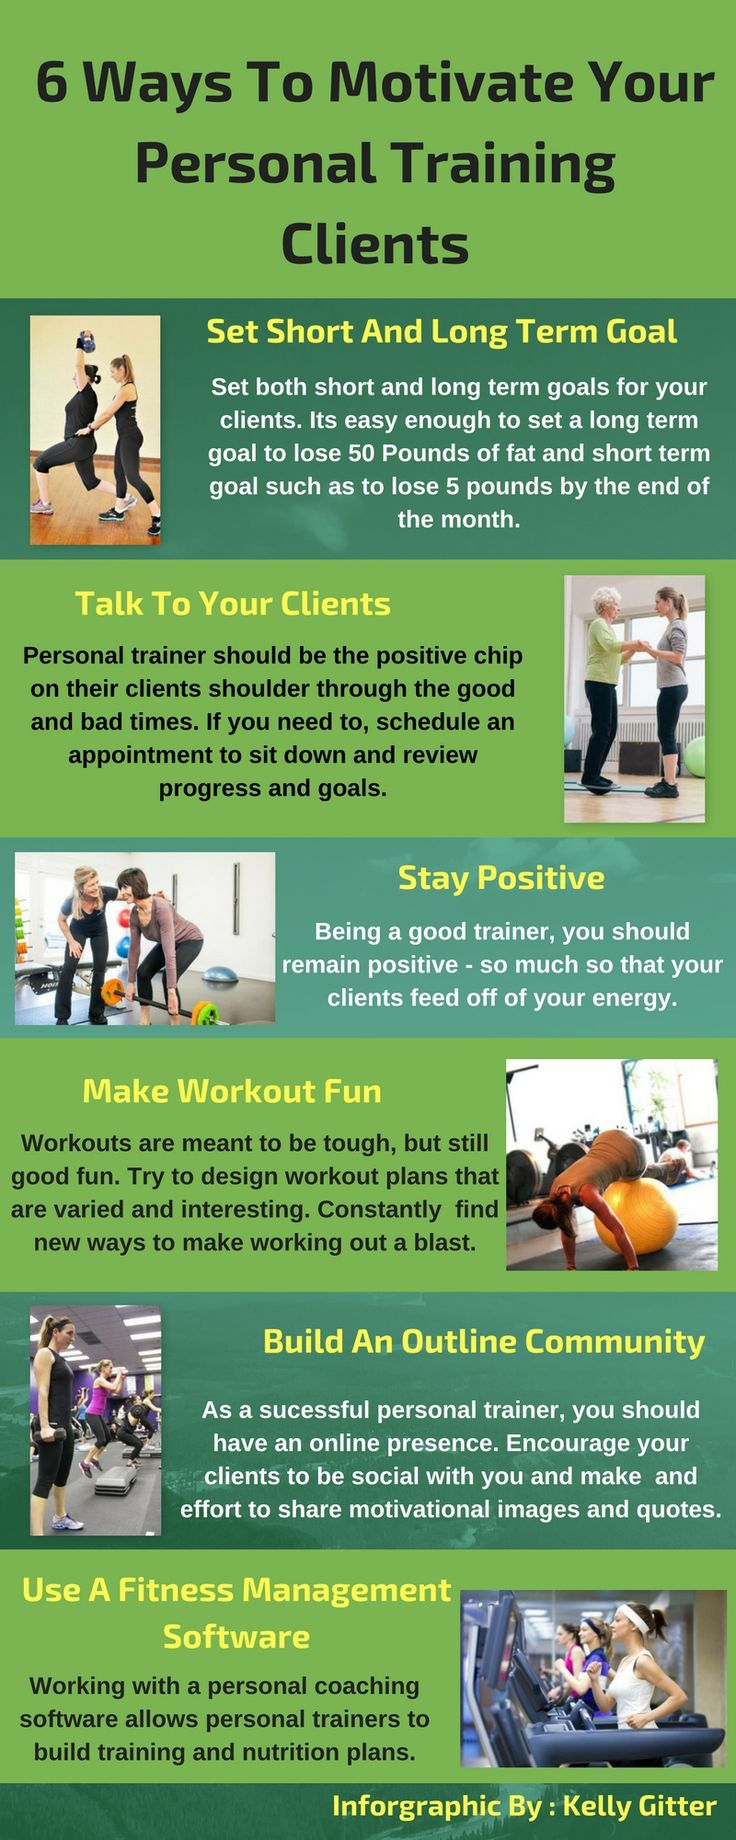 Kelly Gitter, a certified fitness instructor who believes that a body that performs well bio-mechanically, automatically burns more fat and generally functions better. Her diverse clientele seem to believe in that philosophy as well. Her credo all along has been to not only look good, but to feel good in addition to being healthy.To know more,Visit:https://www.levo.com/kelly-gitter